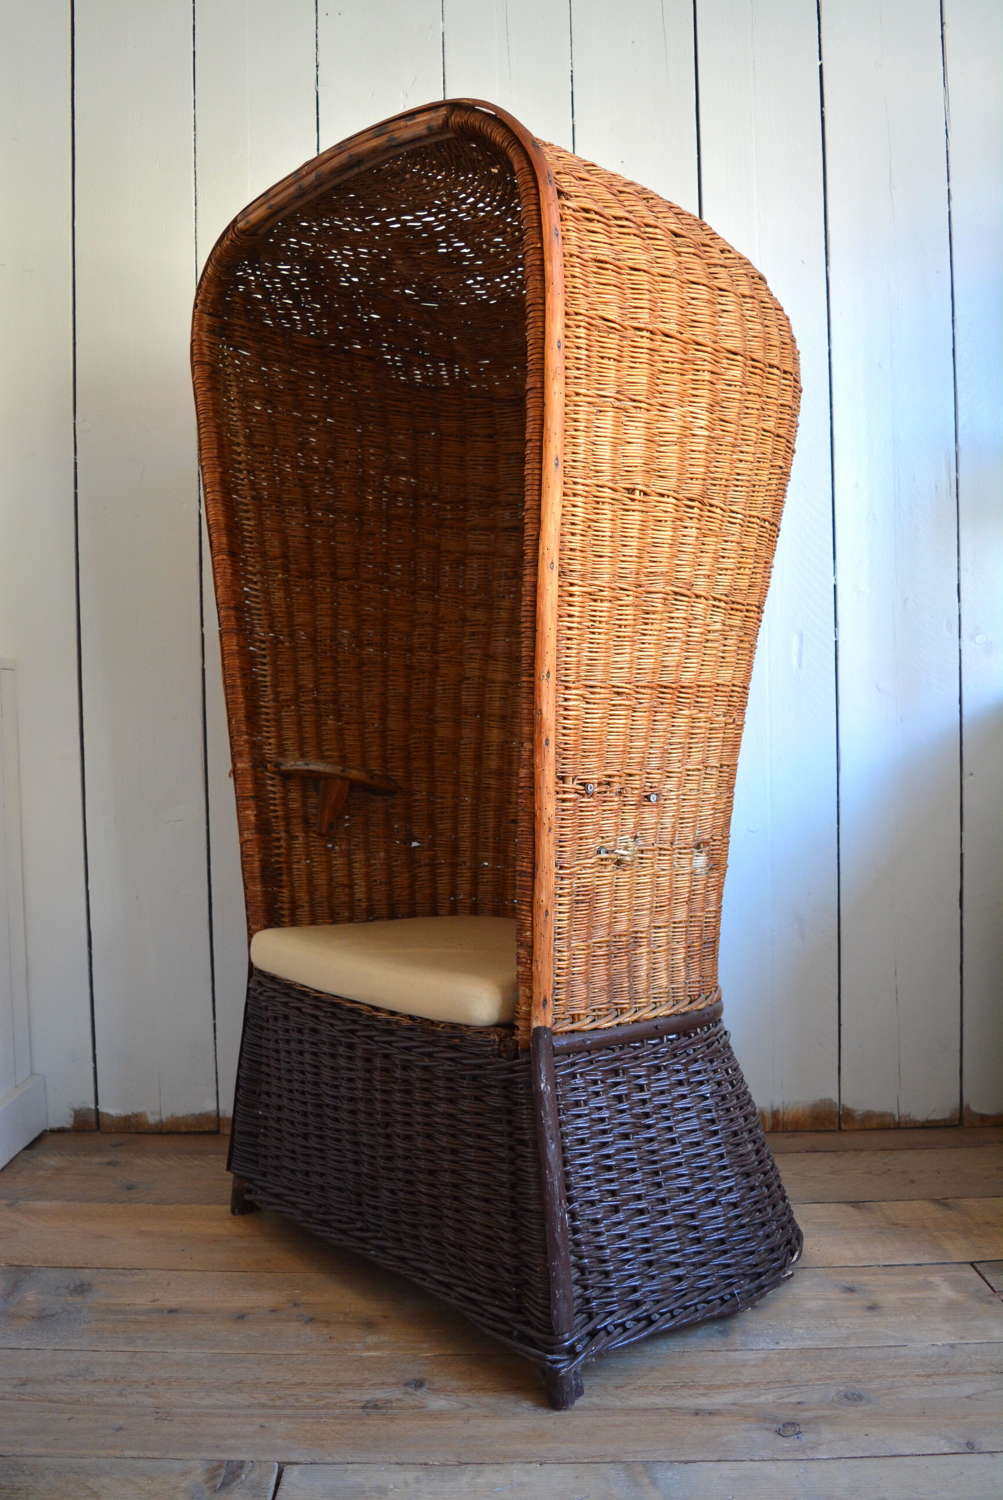 EARLY 20TH CENTURY WICKER PORTERS CHAIR